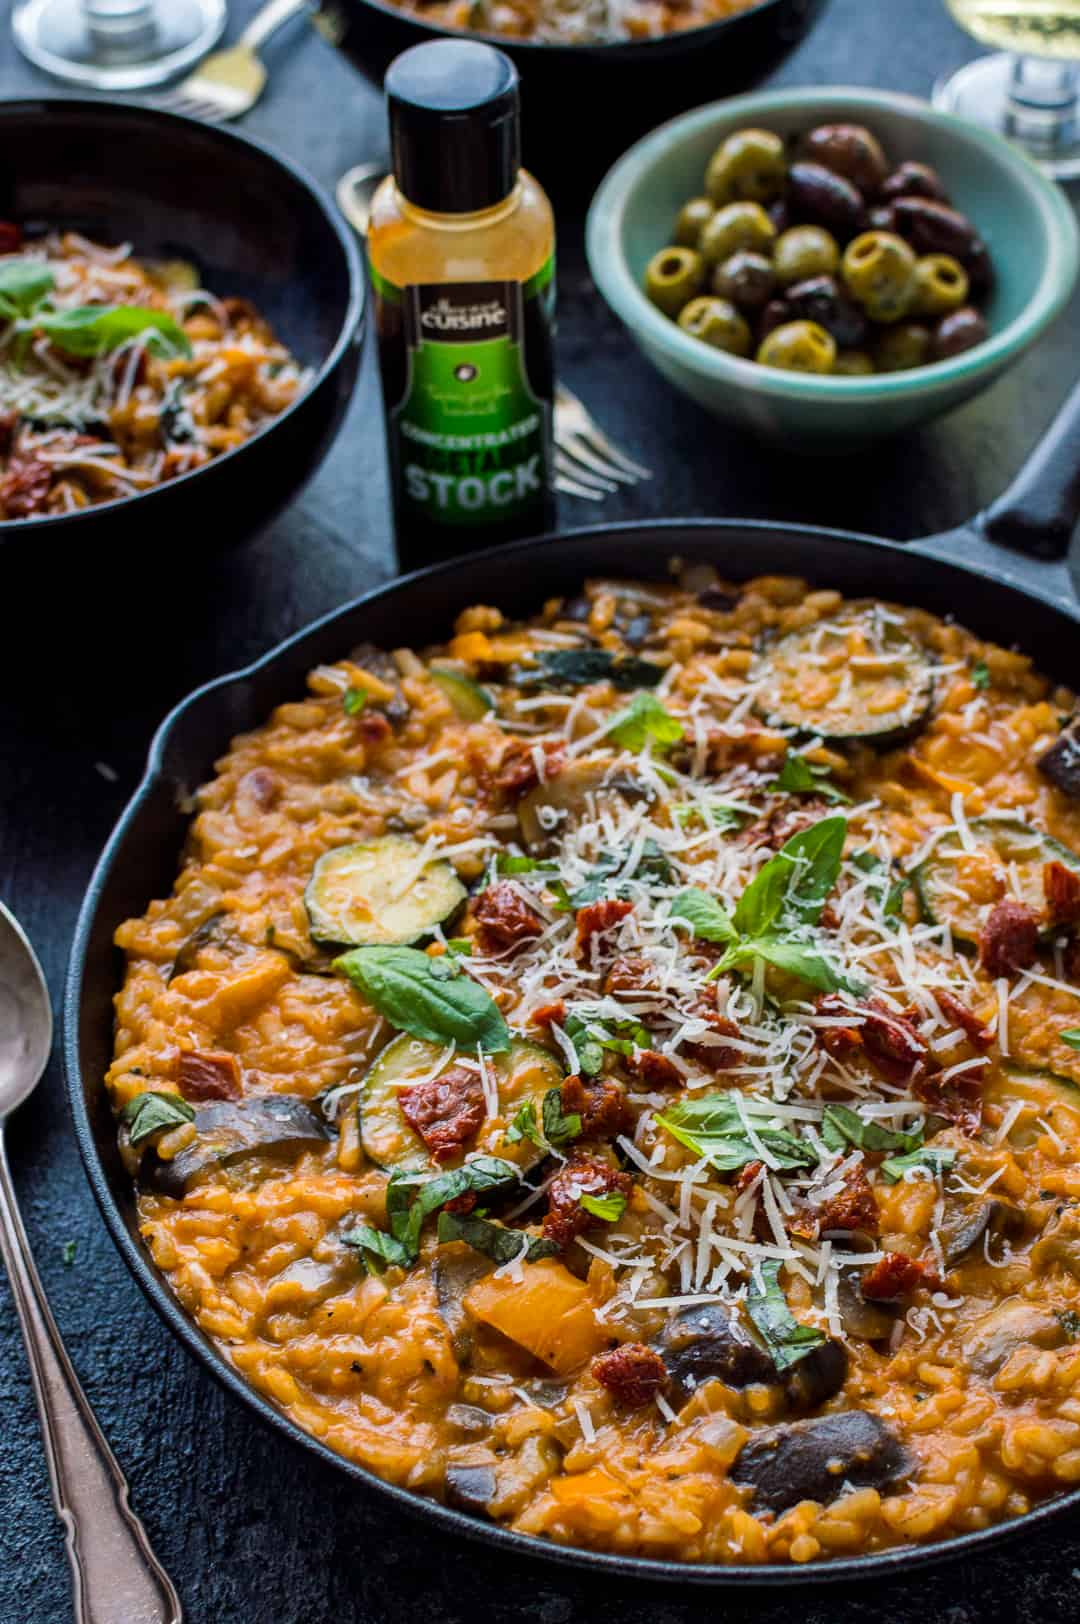 Ratatouille risotto with essential cuisine liquid stock